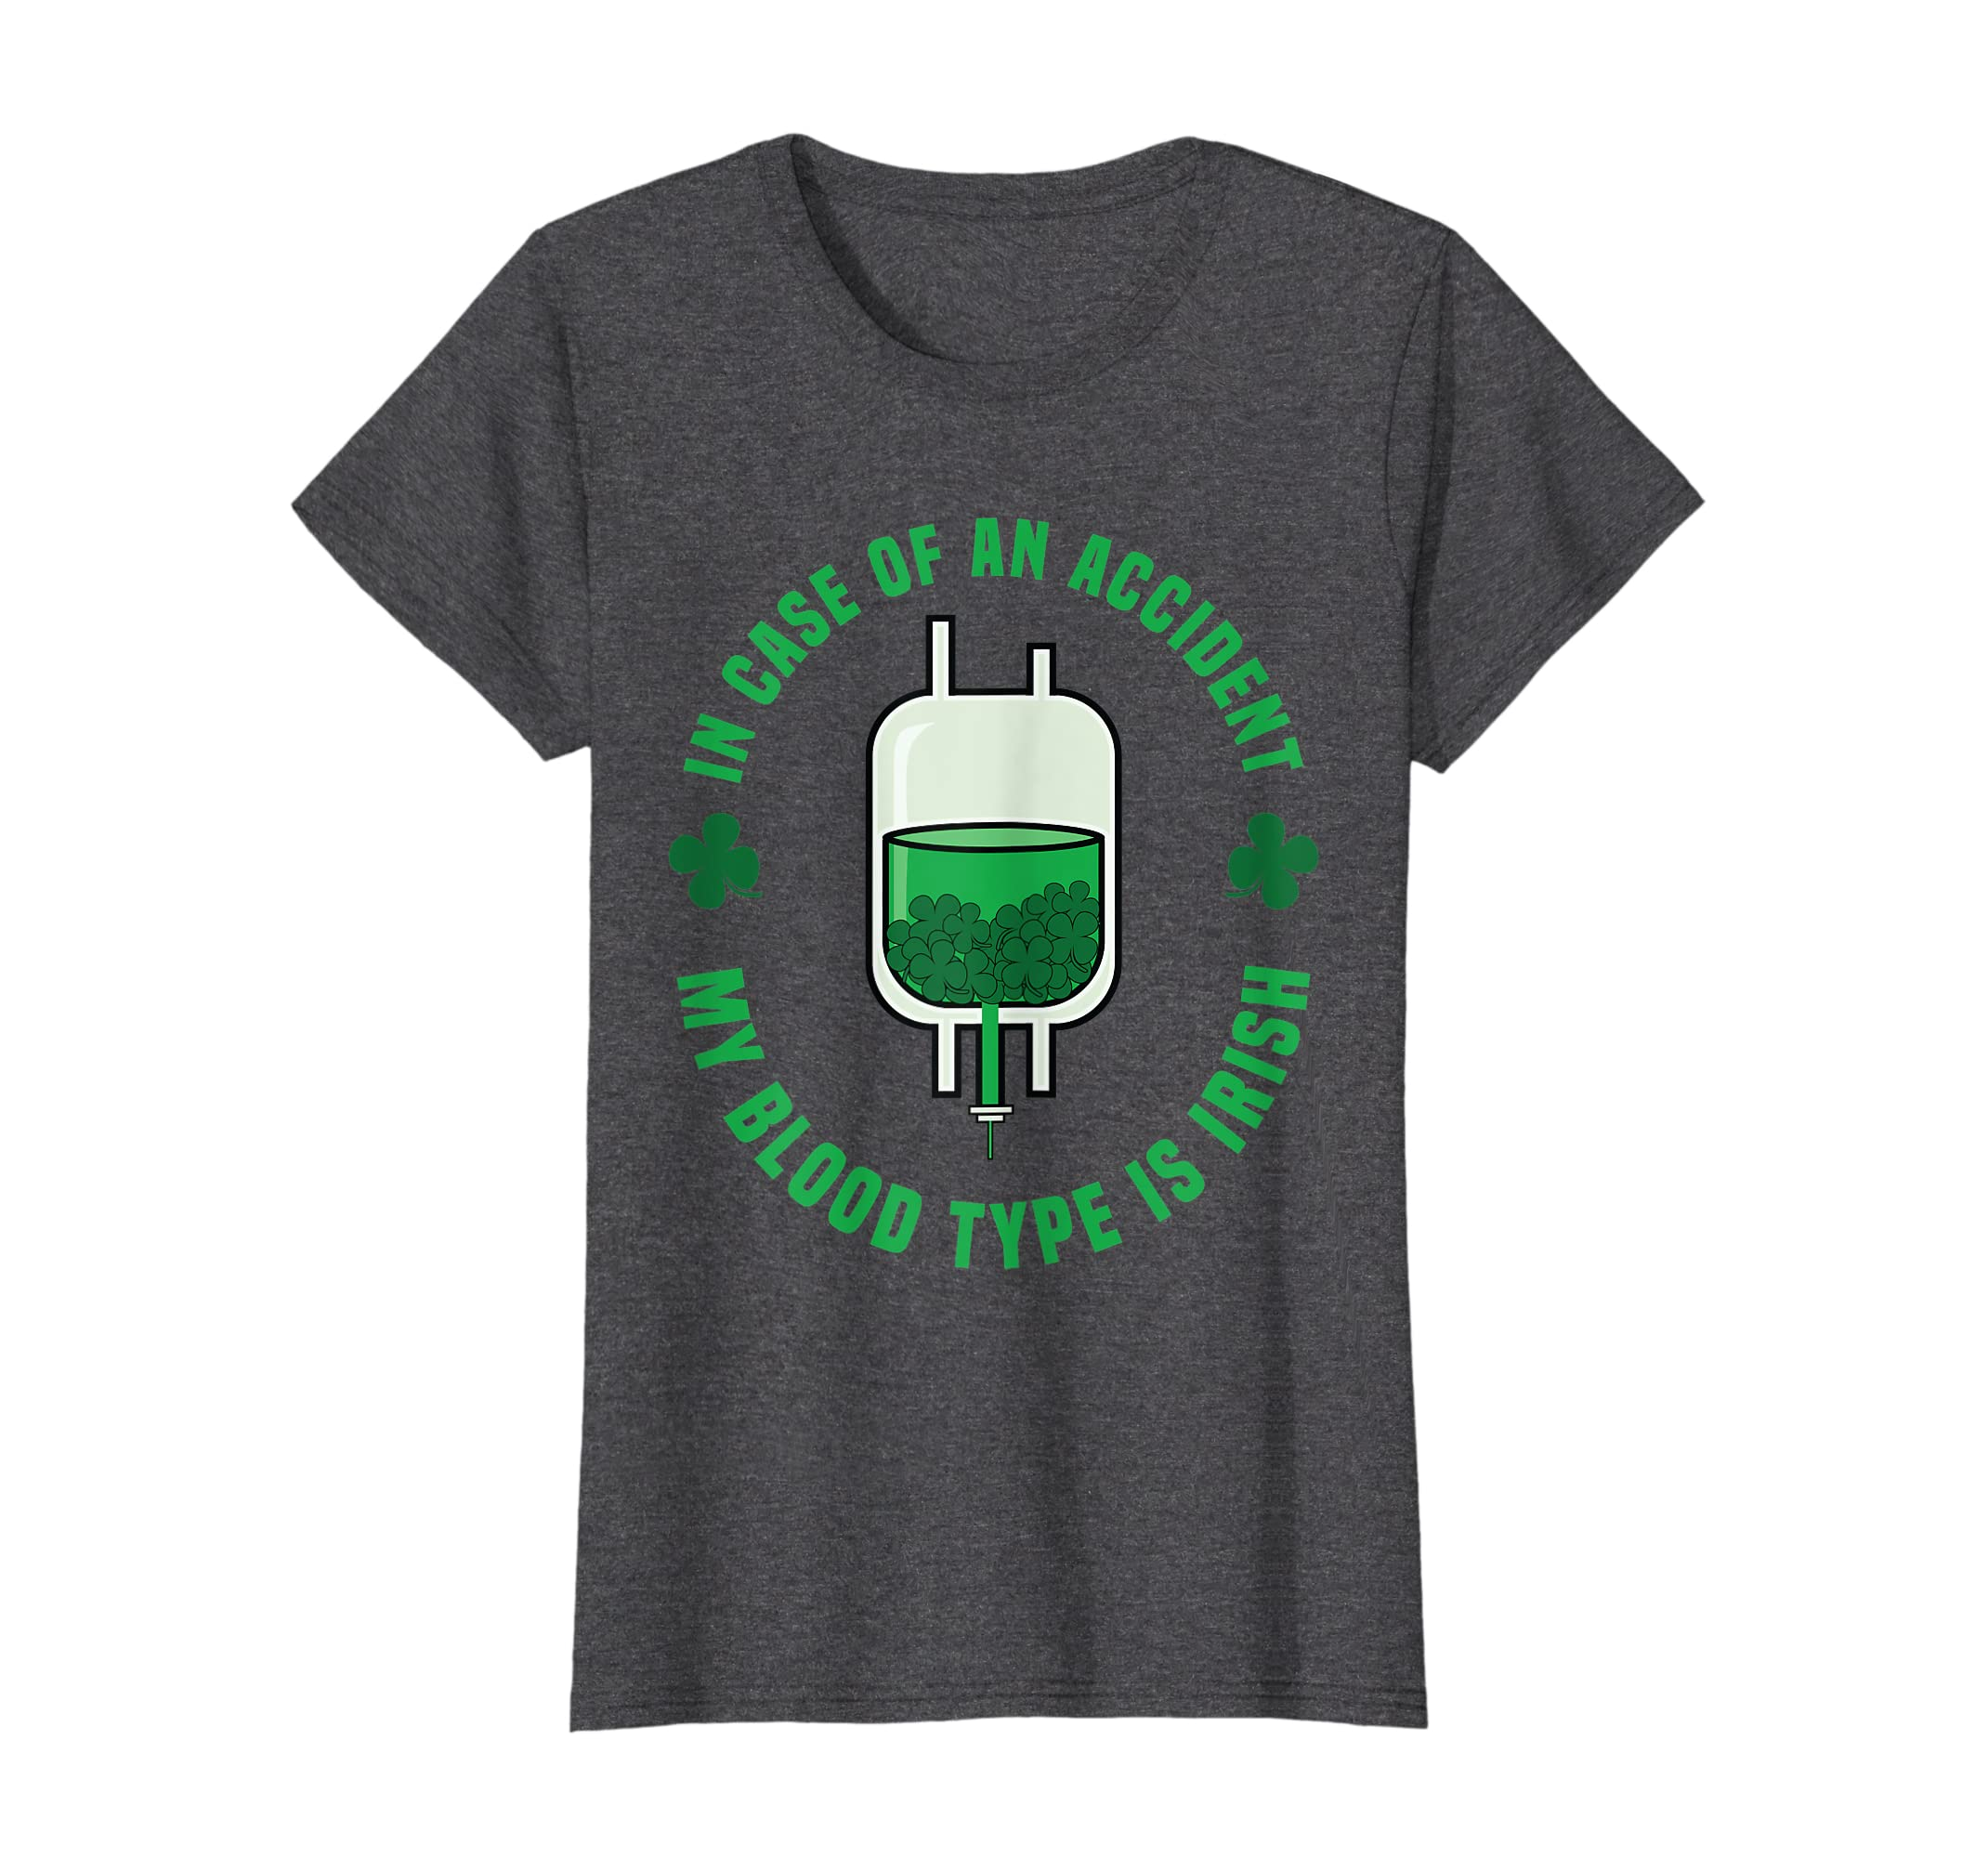 c746433a Amazon.com: St Patricks Day Tee Shirt - Irish Funny Blood Type Tshirt:  Clothing